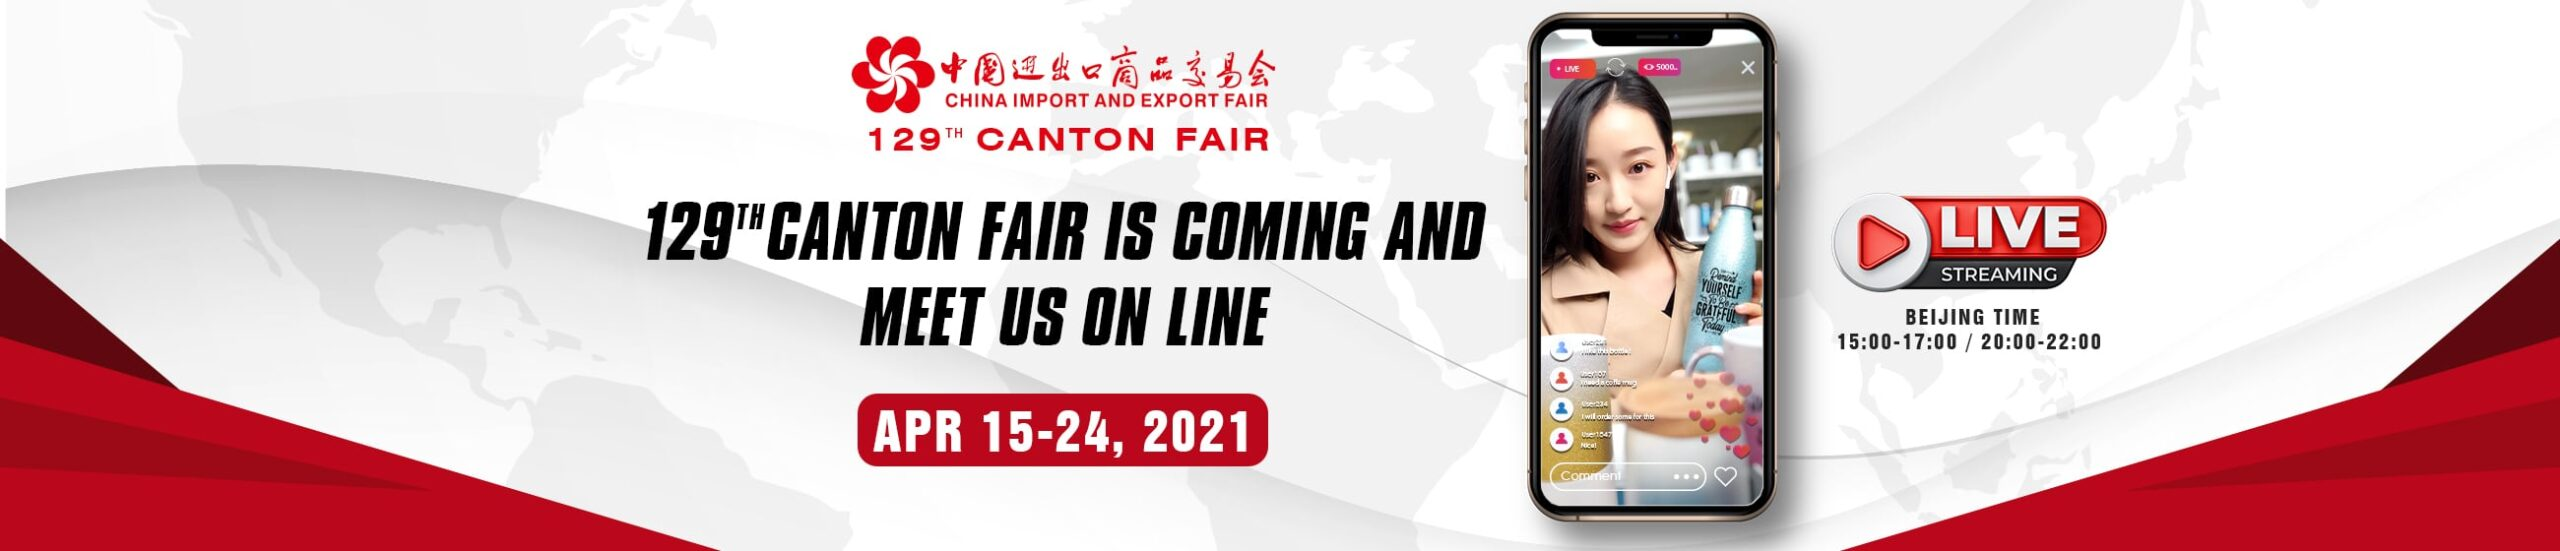 2021 Canton Fair